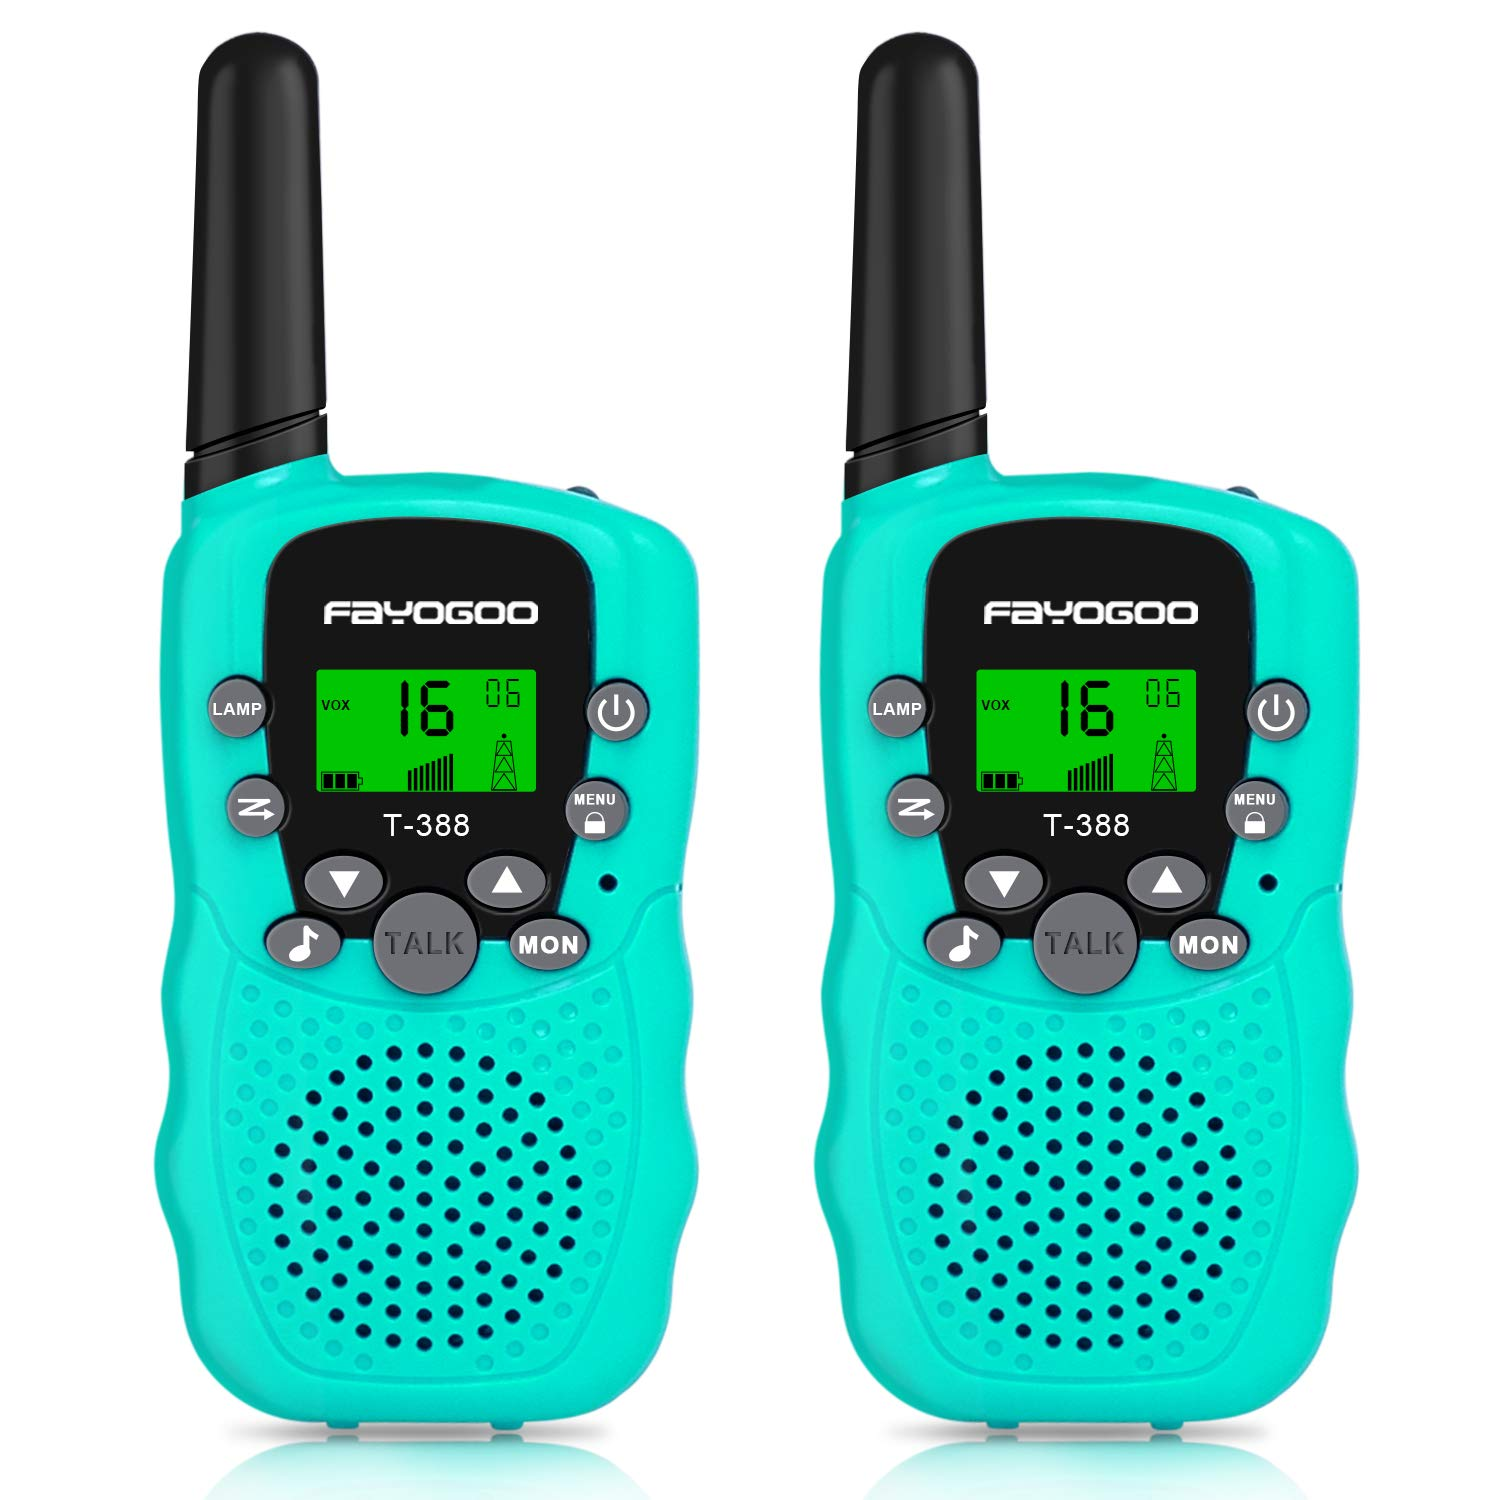 FAYOGOO Kids Walkie Talkies, 22-Channel FRS/GMRS Radio, 4-Mile Range Two Way Radios with Flashlight and LCD Screen, and Toys for 3-12 Year Old Boys and Girls (T388-Blue) by FAYOGOO